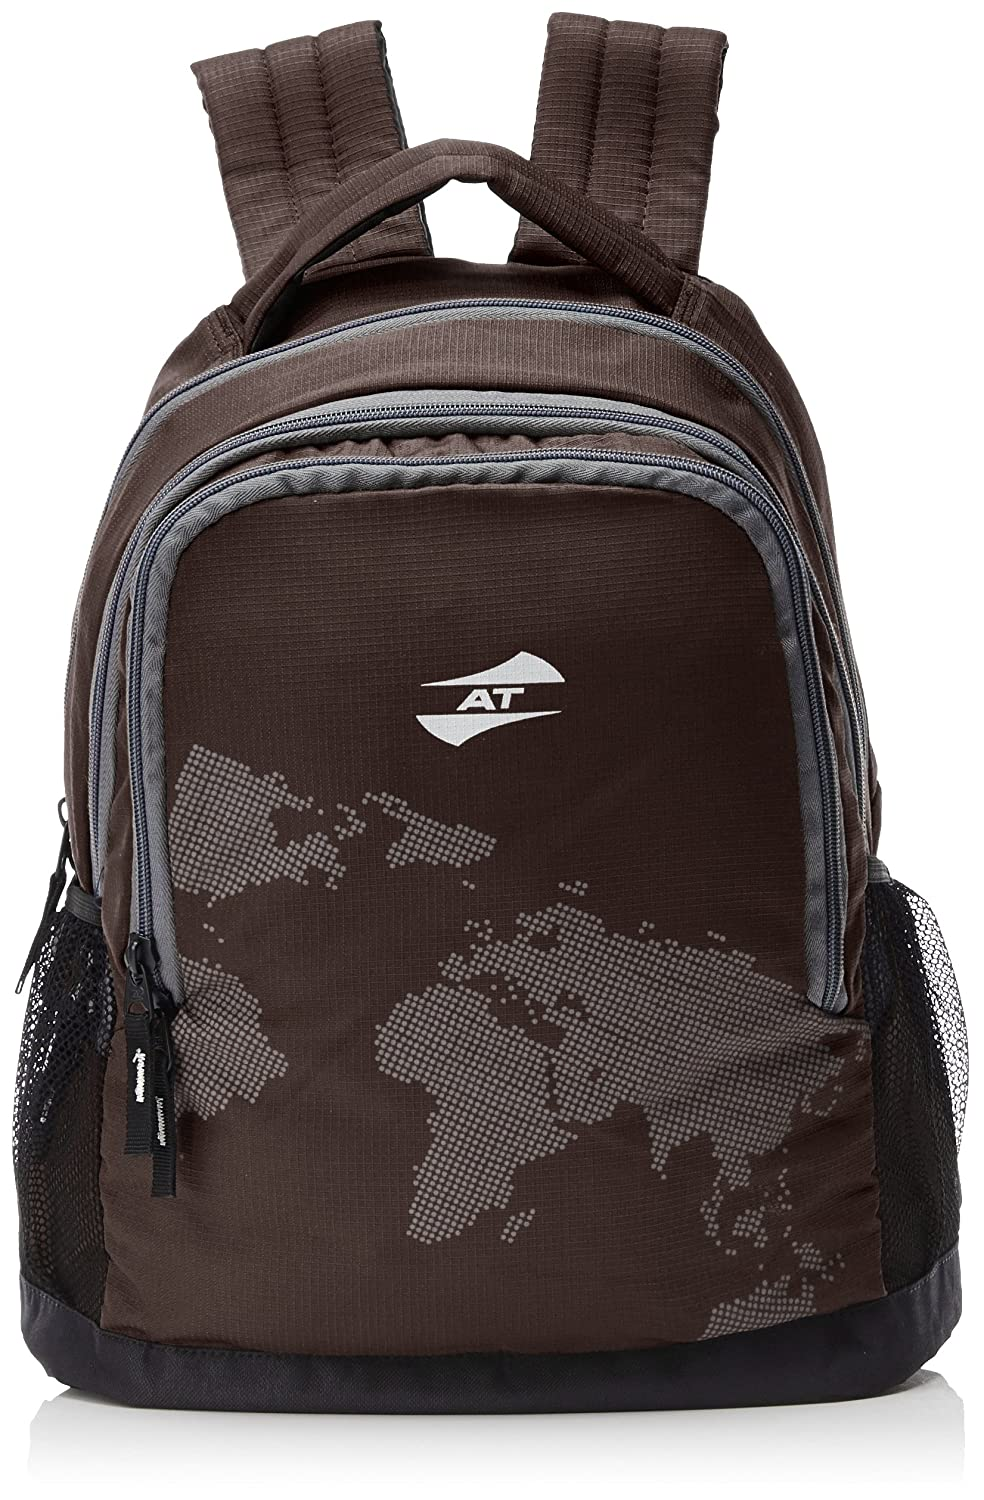 Get American Tourister Brown Casual Backpack For Rs 888 Only